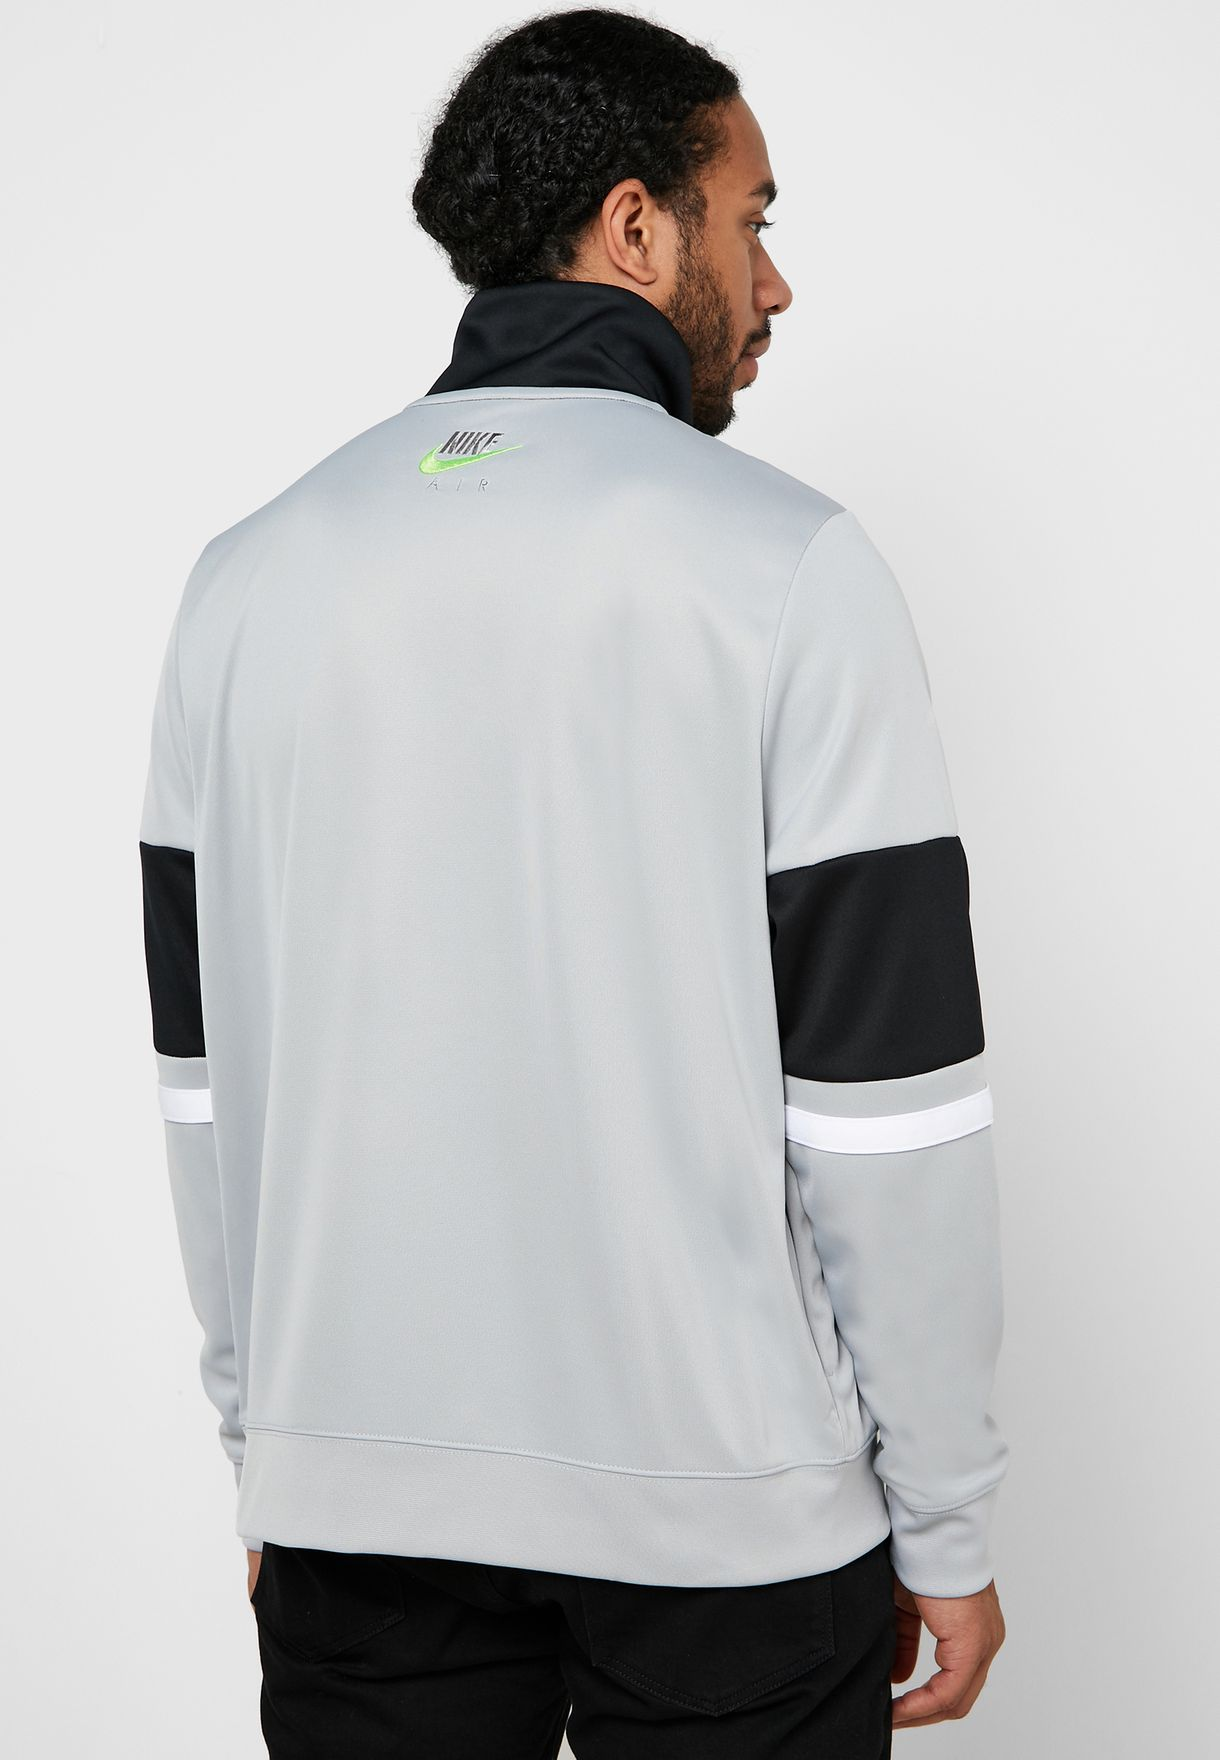 NSW Air Track Jacket